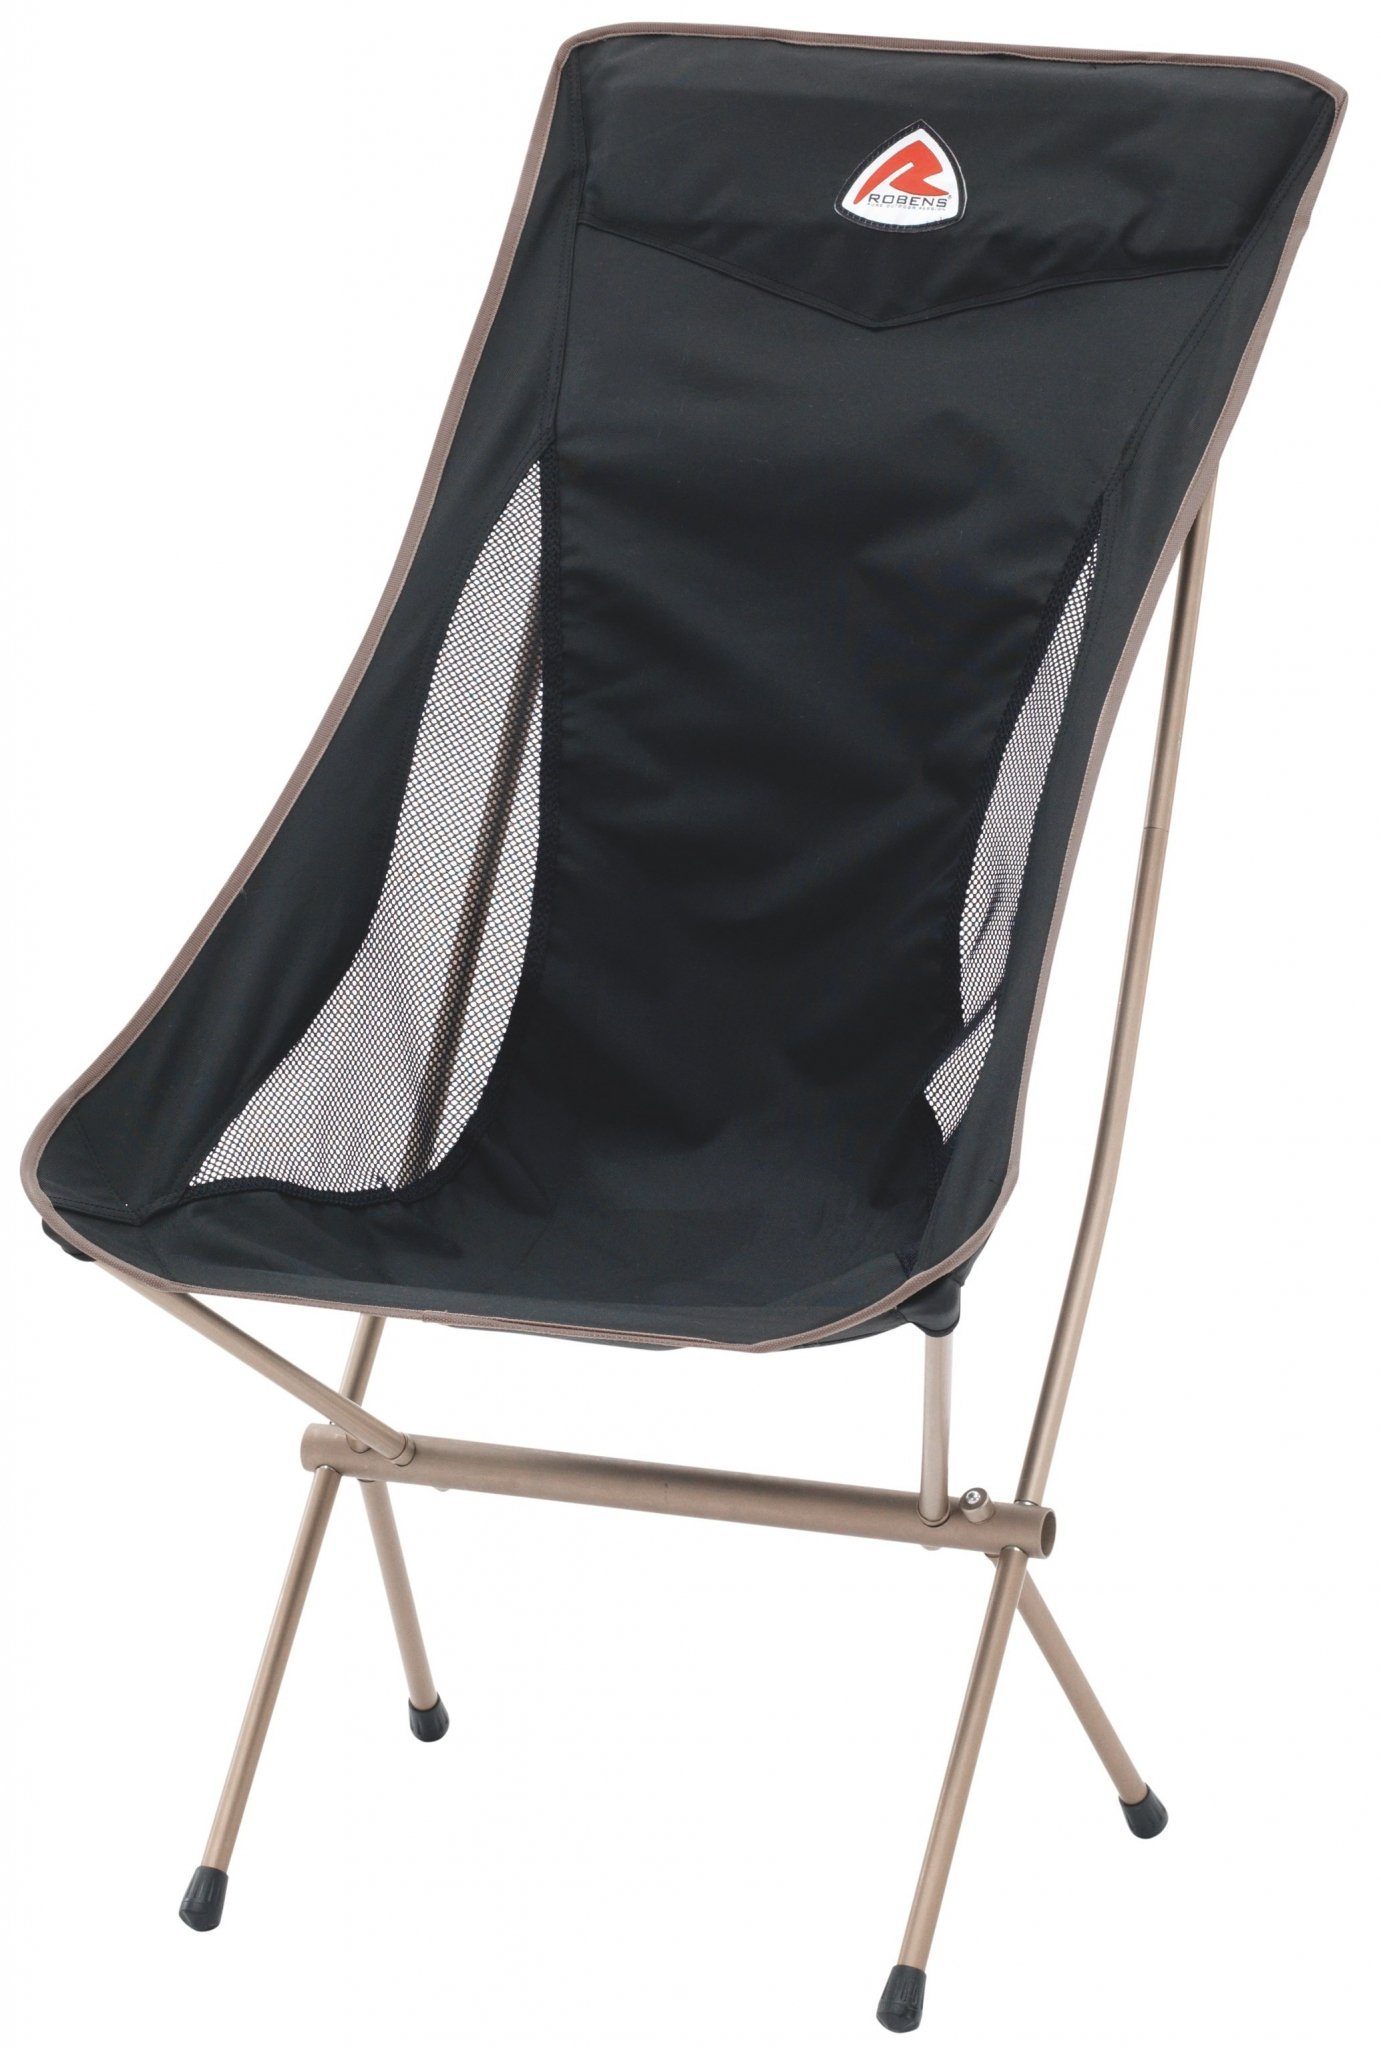 Robens Camping-Stuhl »Observer Folding Chair«